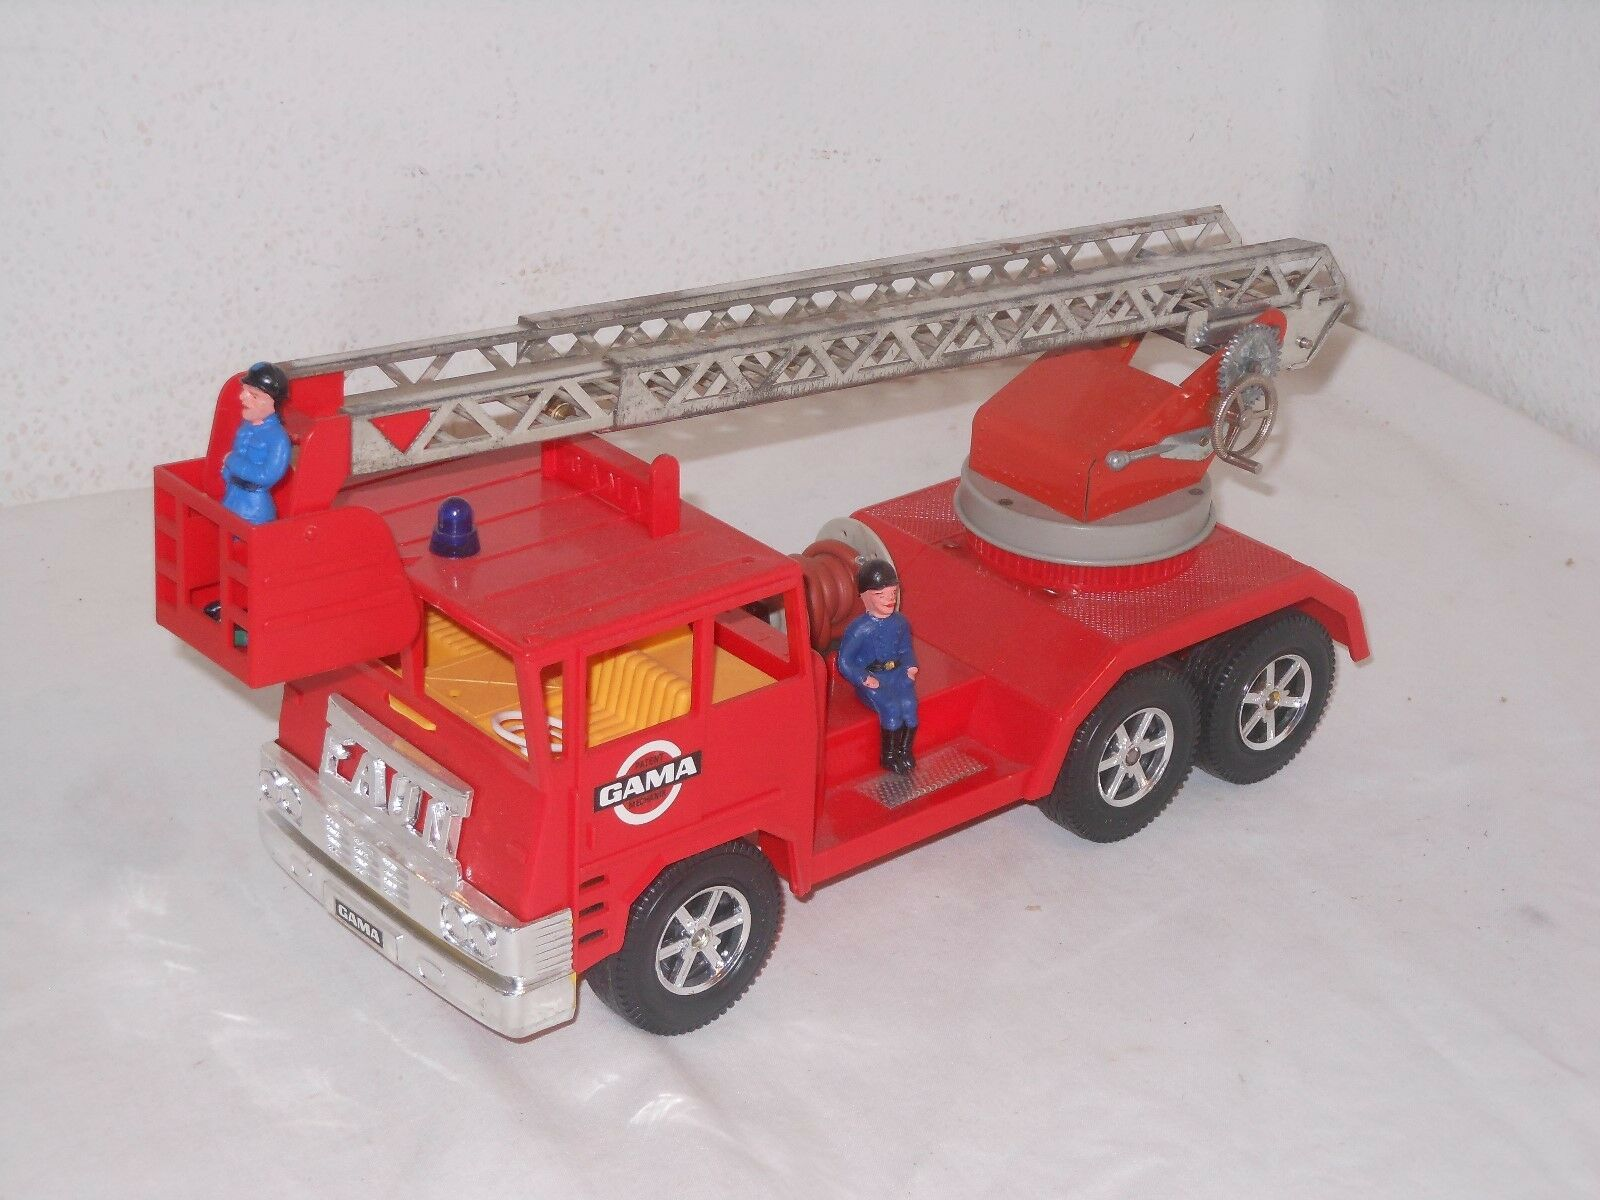 FAUN FIRE BRIGADE Cart - Vintage Tin-Toy - Gama - West Germany - 21